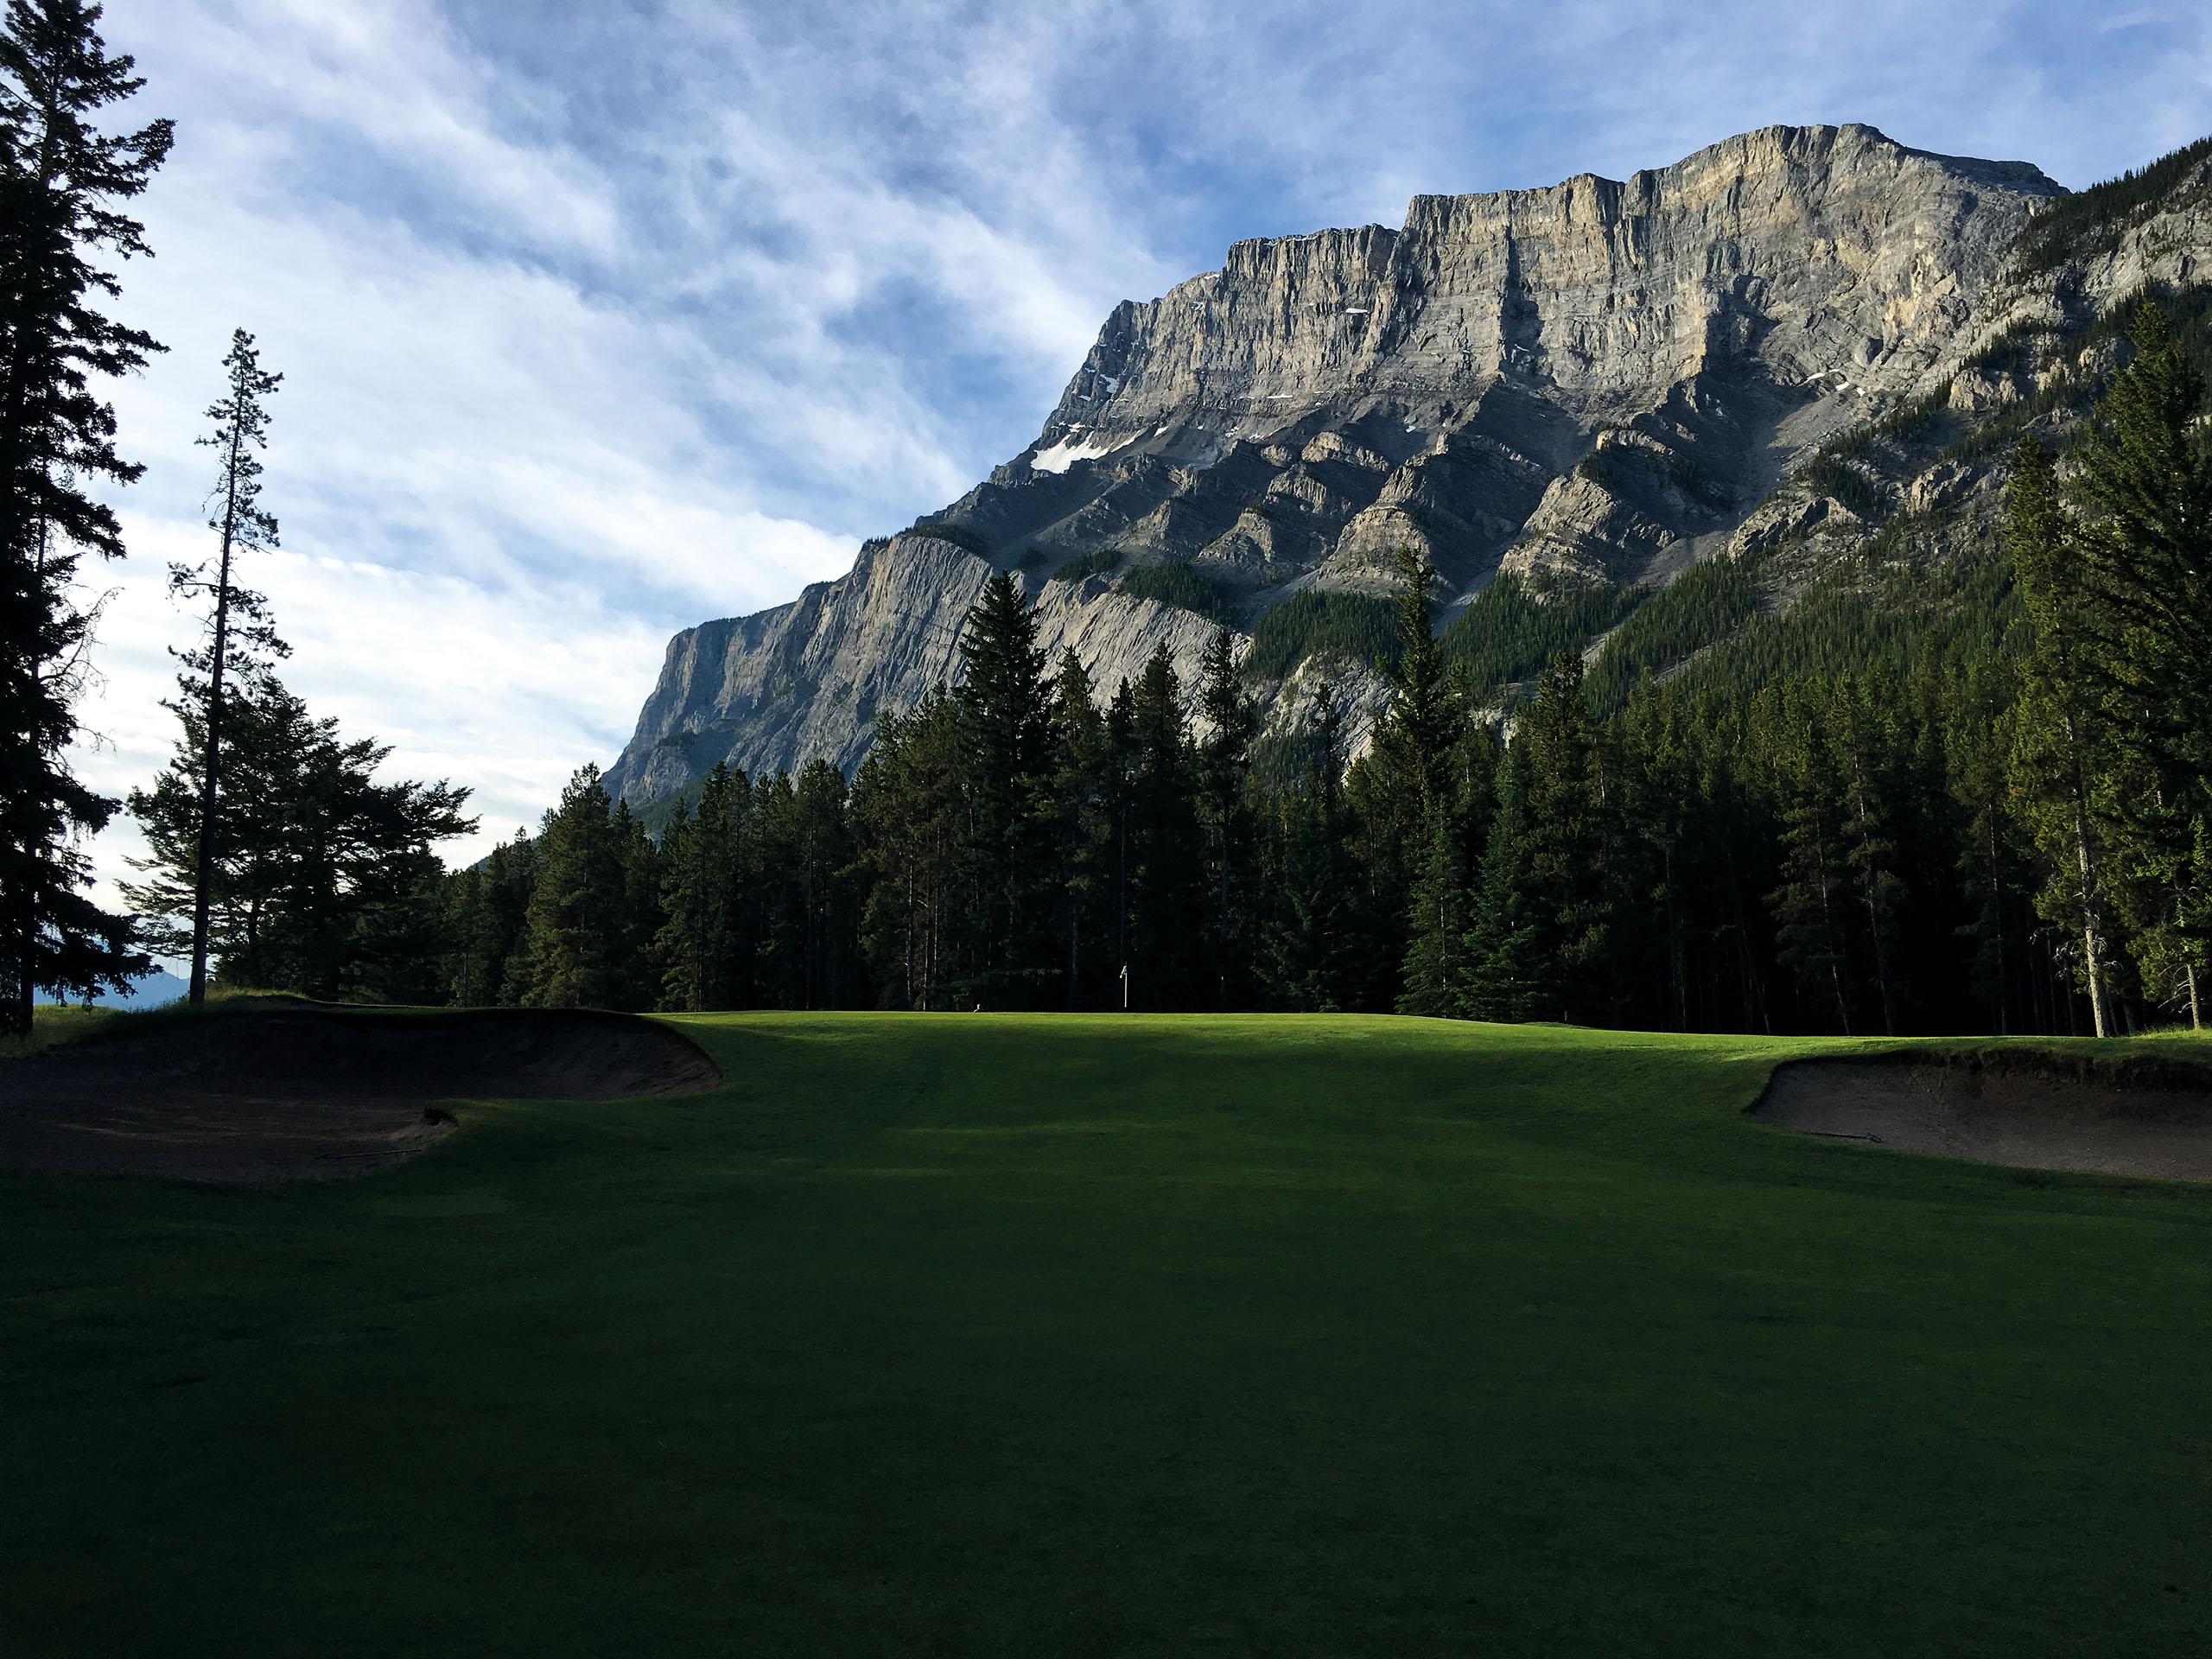 The view at what is now the second hole at Banff Springs. The par 3 was No. 5 in the Donald Ross routing and No. 6 in the Stanley Thompson routing. Photo by Riley Johns